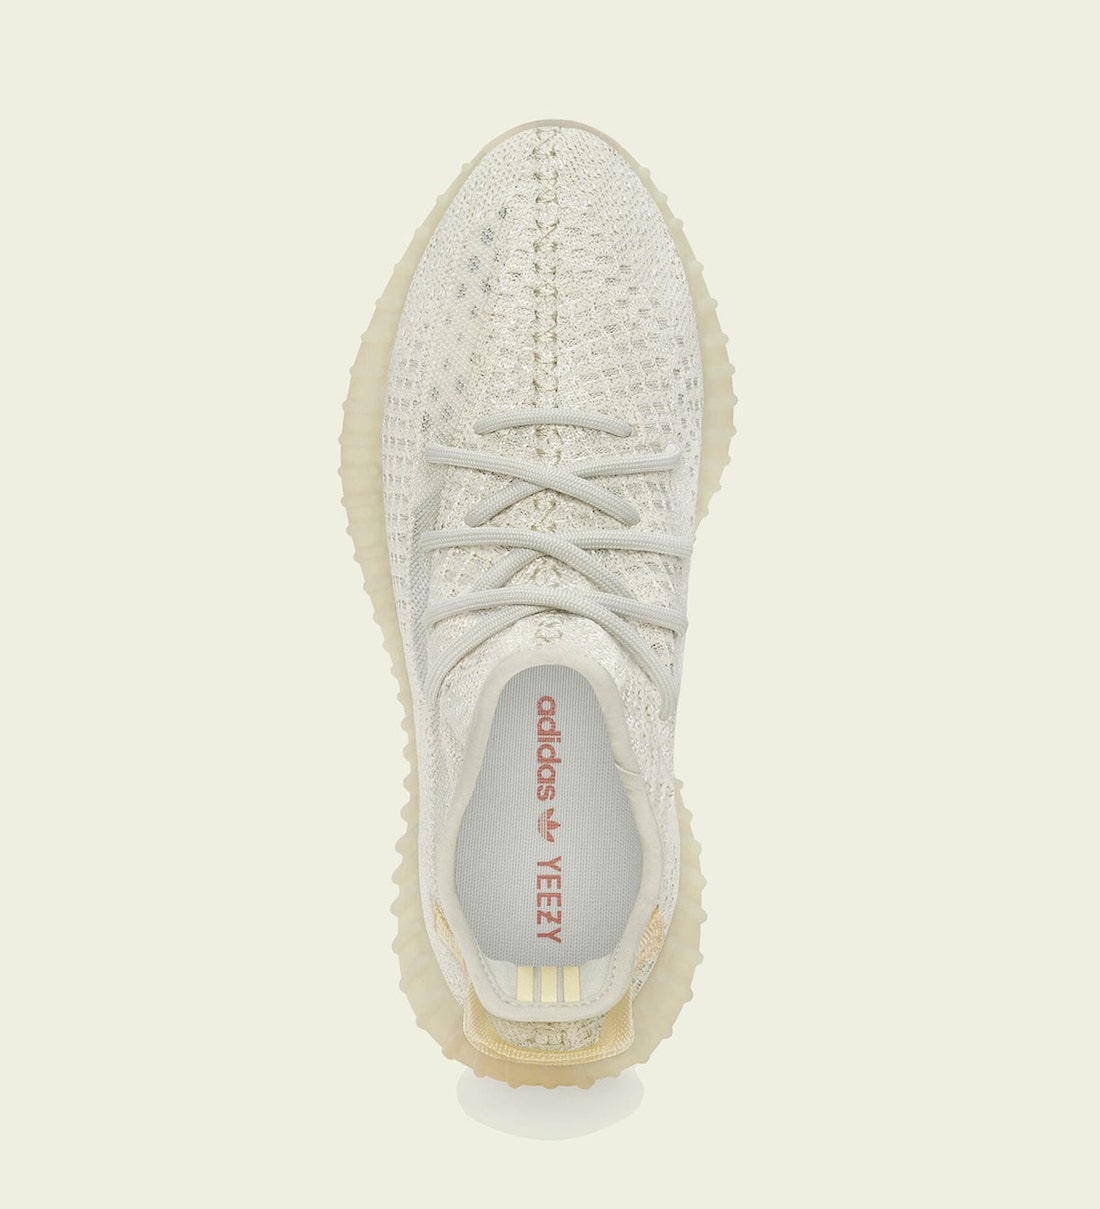 adidas-Yeezy-Boost-350-V2-Light-GY3438-Release-Date-Price-3